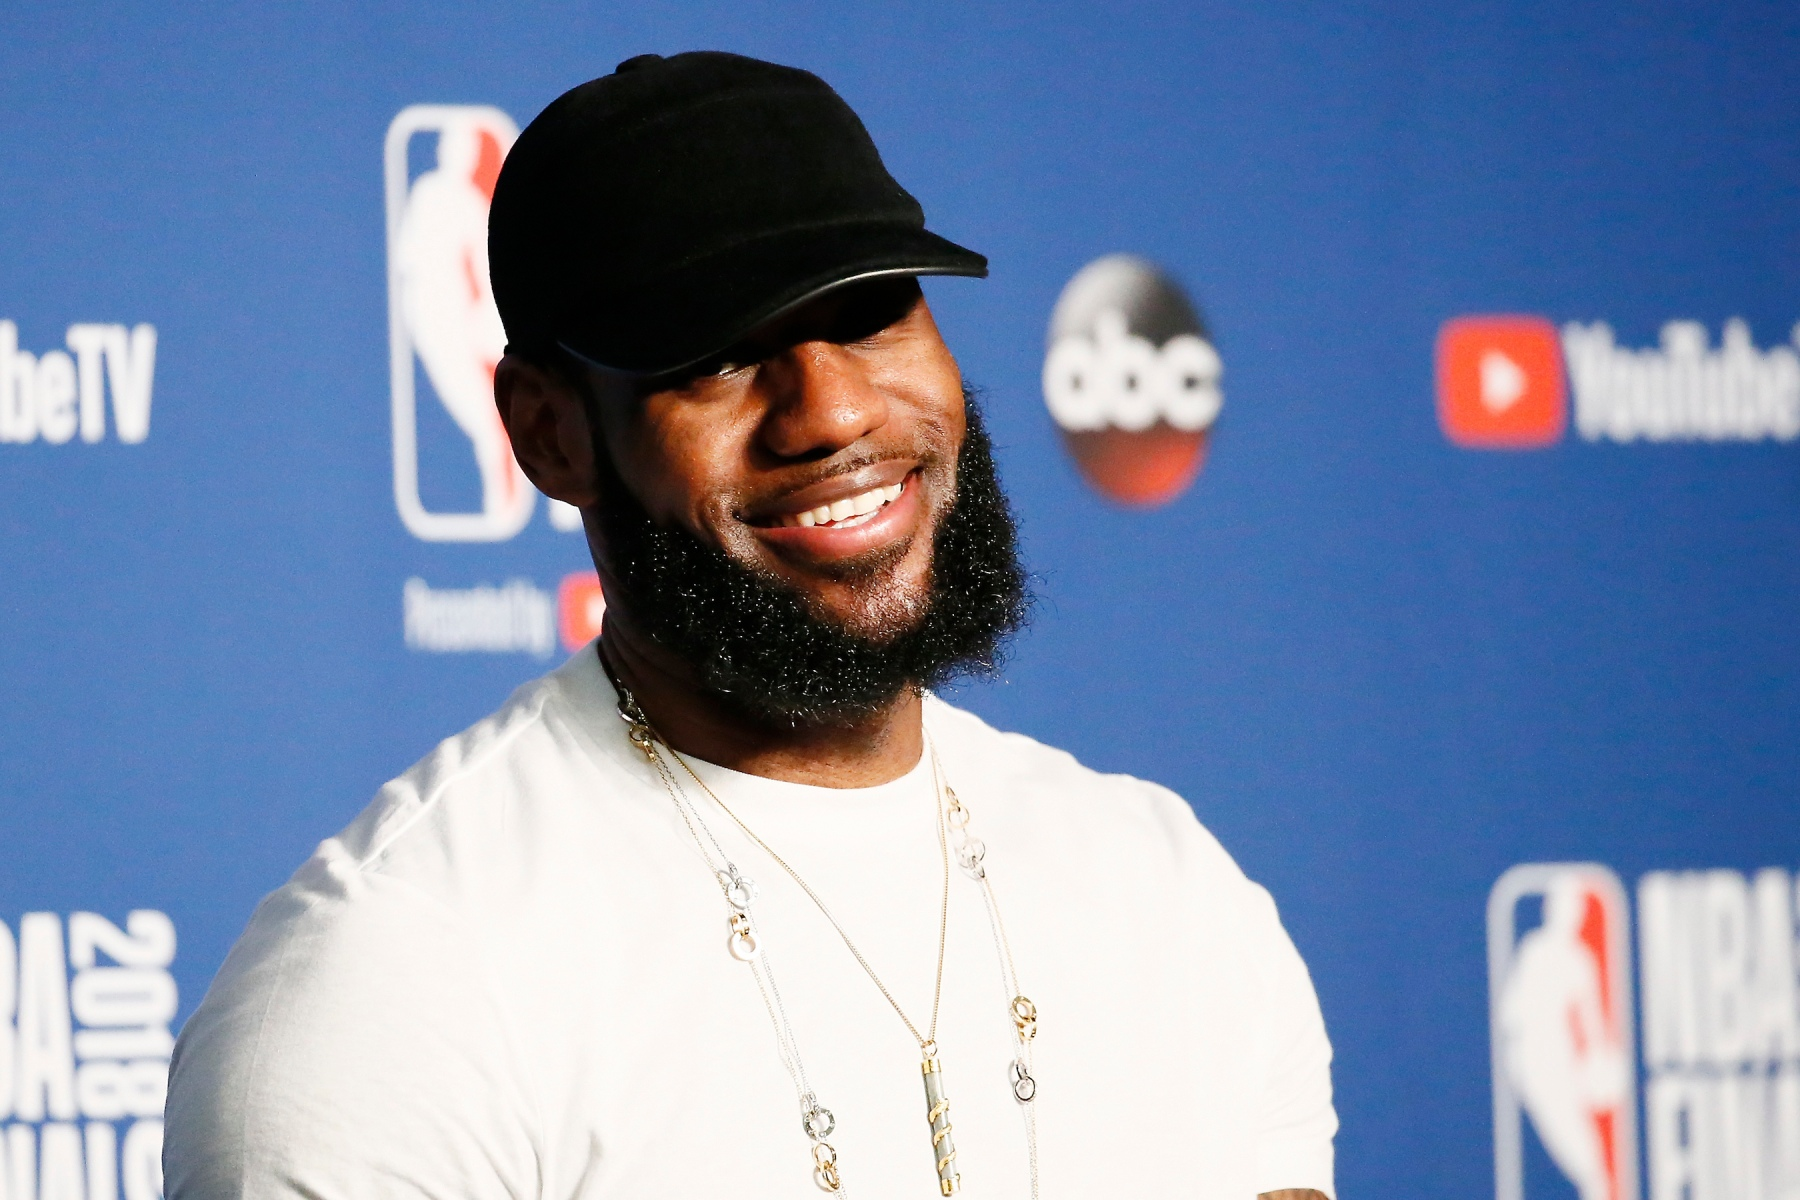 LeBron James #23 of the Cleveland Cavaliers talks to the media after being defeated by the Golden State Warriors in Game Four of the 2018 NBA Finals won 108-85 by the Golden State Warriors over the Cleveland Cavaliers at the Quicken Loans Arena on June 6, 2018 in Cleveland, Ohio. Copyright 2018 NBAE (Photo by Chris Elise/NBAE via Getty Images)